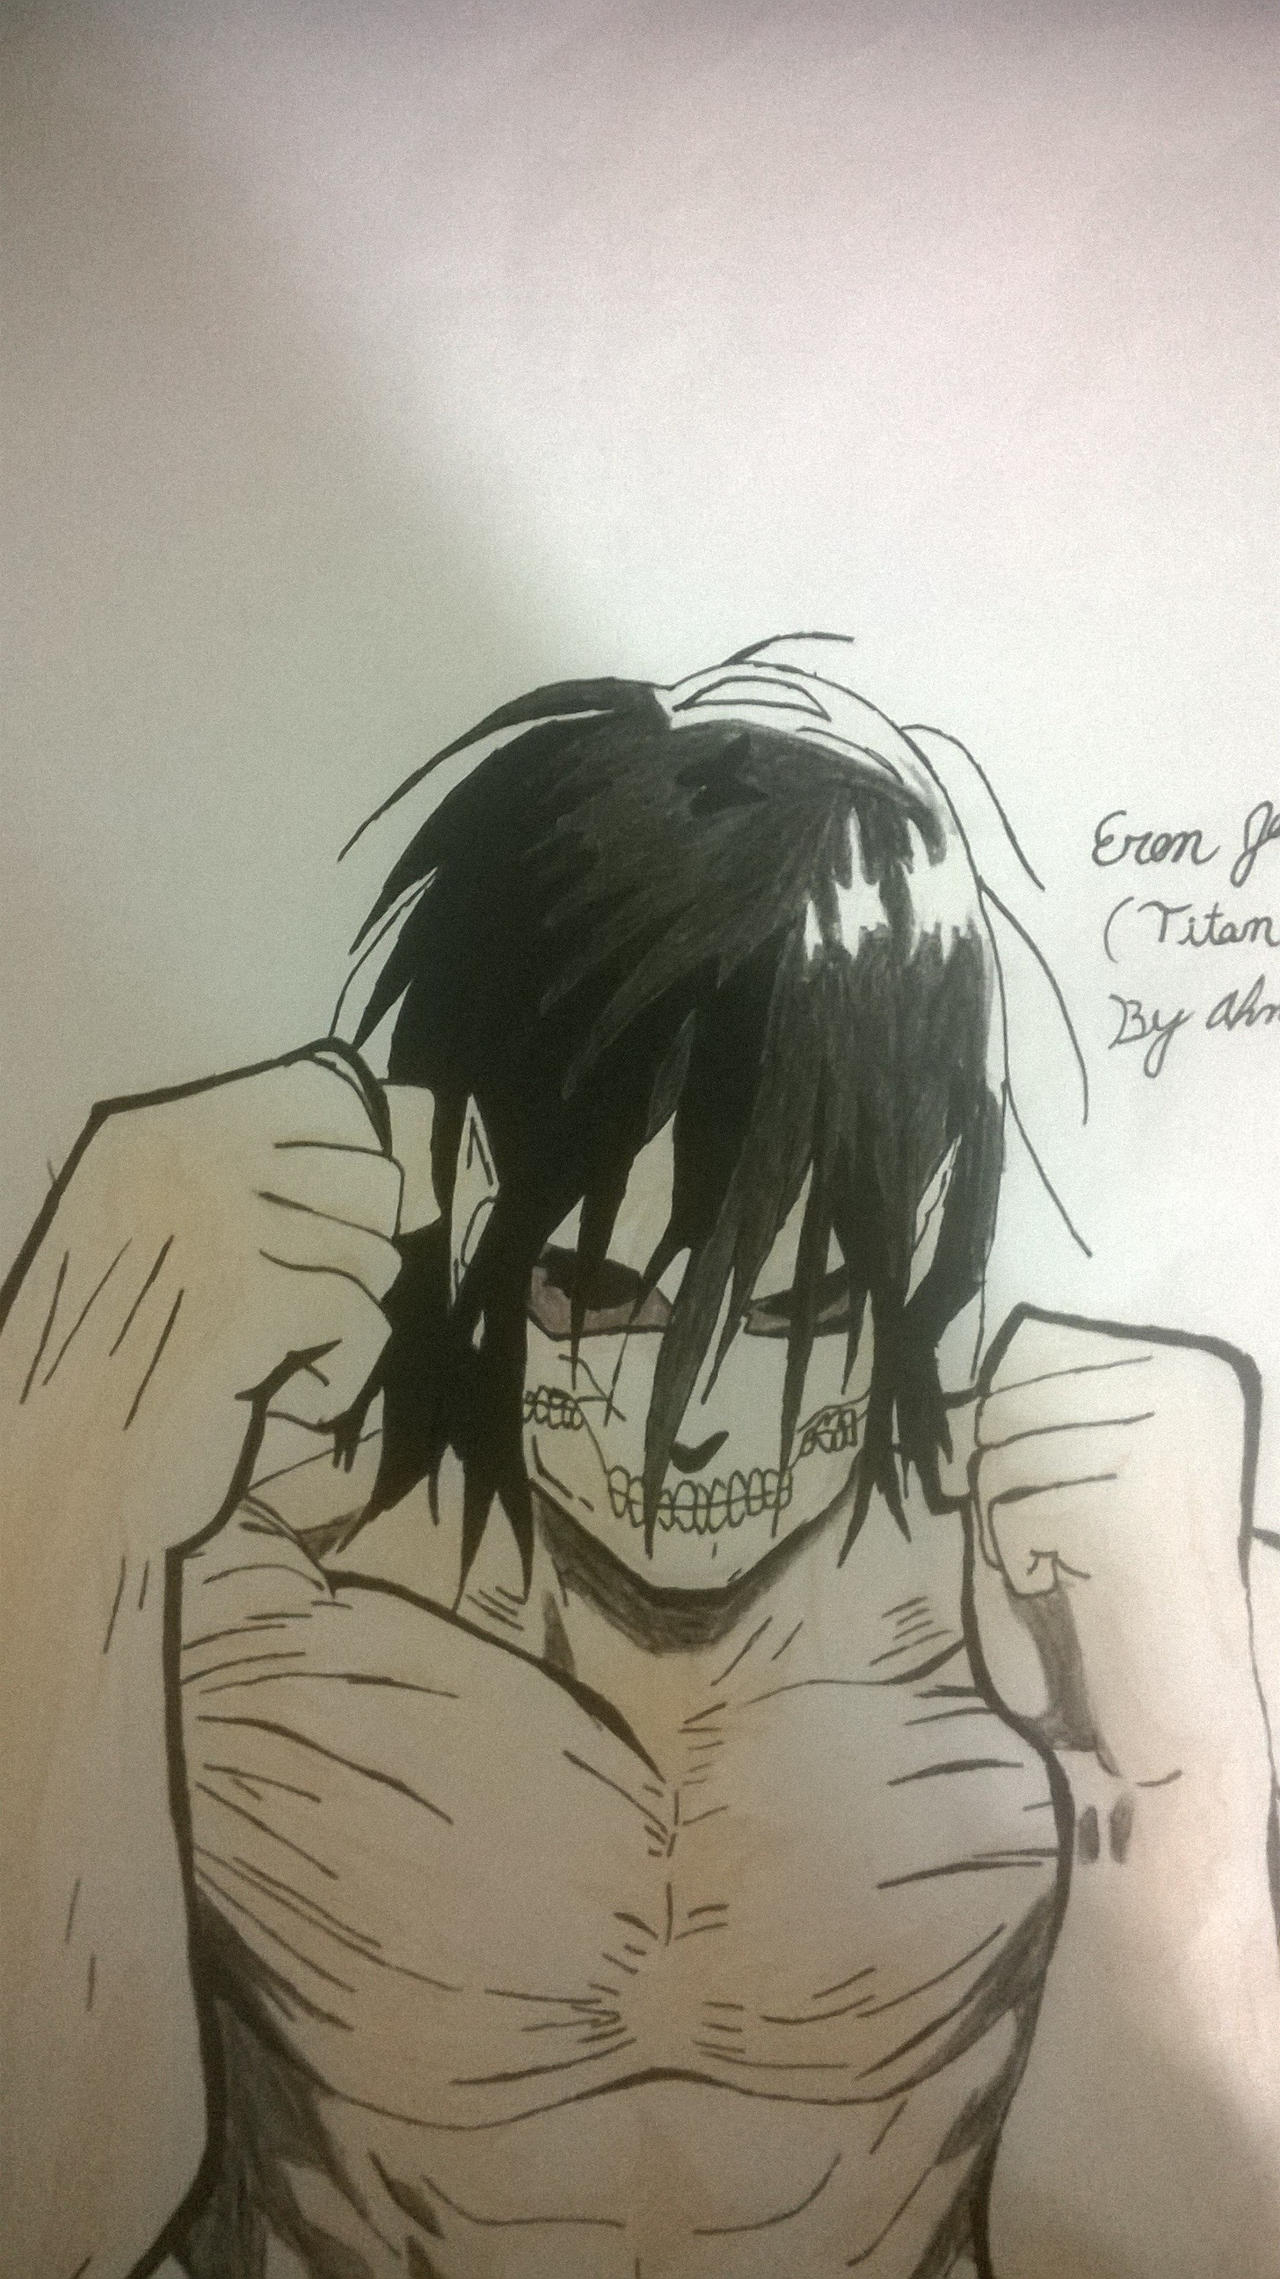 Attack On Titan EREN (TITAN FORM) by animeart67 on DeviantArt